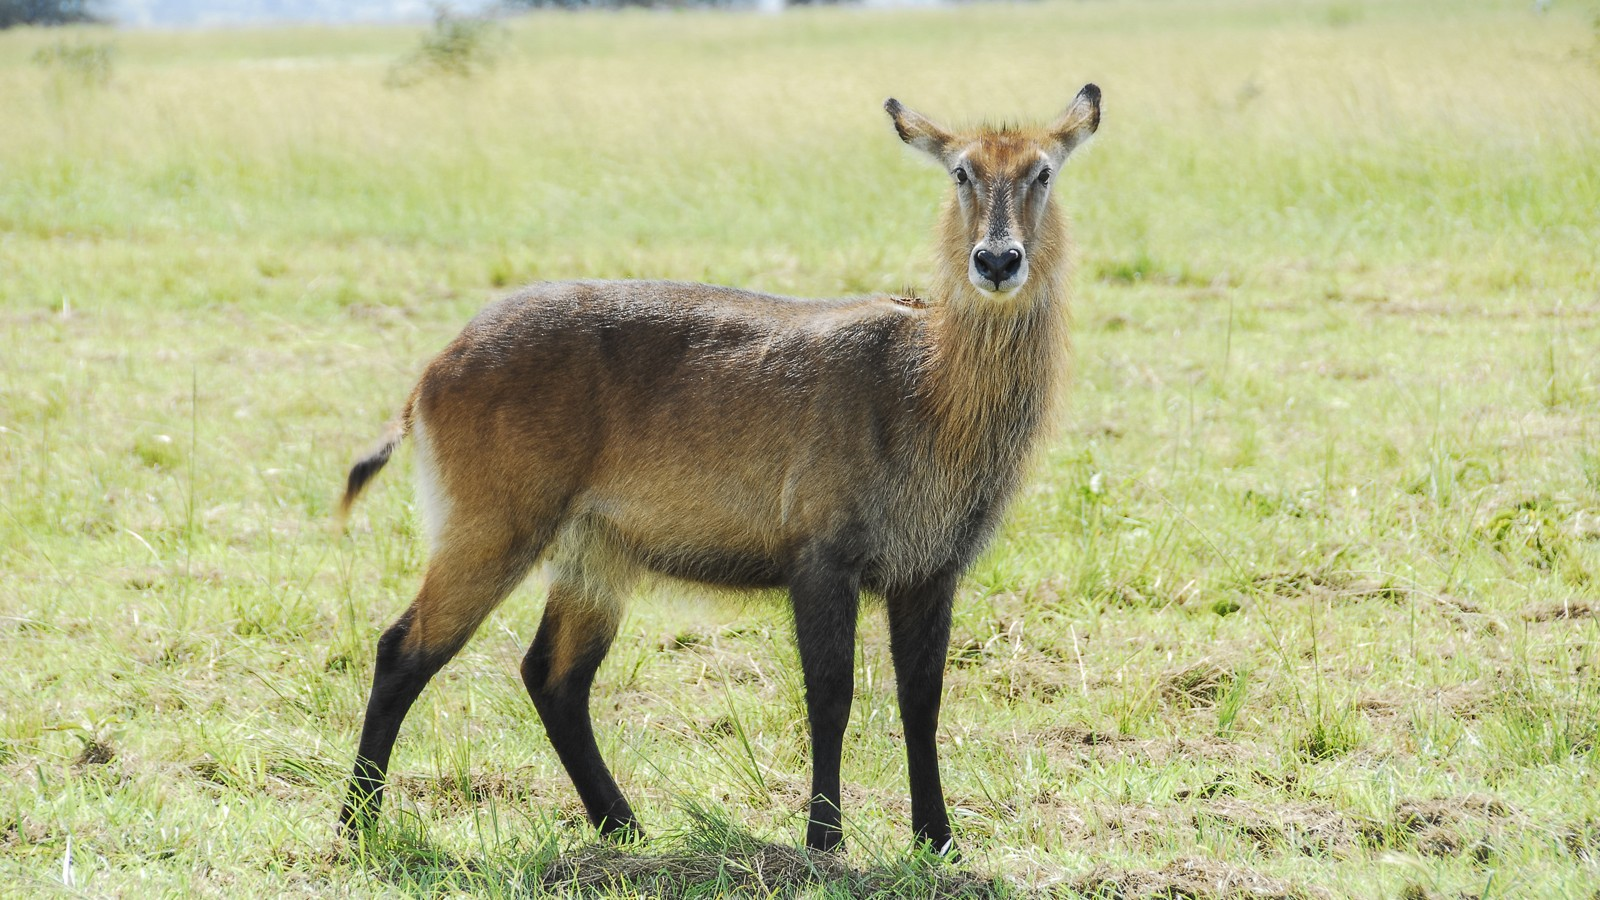 Female waterbuck, Kidepo Valley National Park (Uganda)